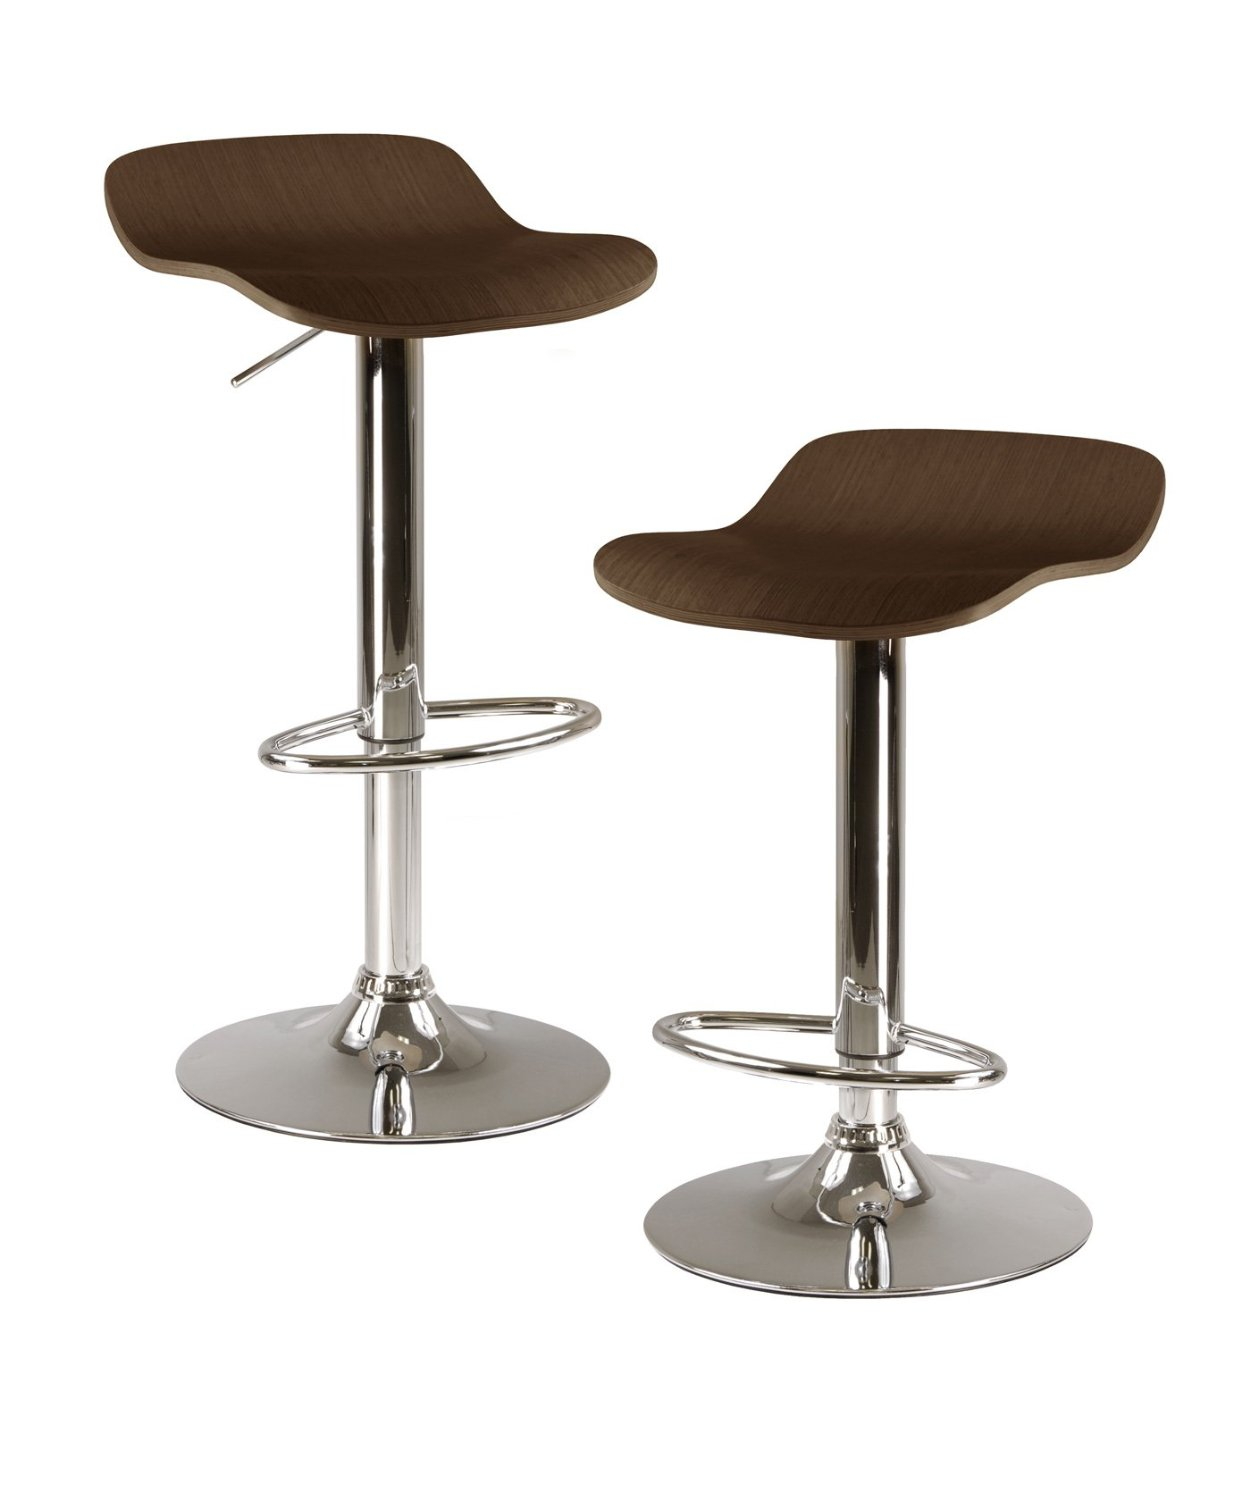 Winsome Wood Kallie Air Lift Adjustable cymax bar stools for inspiring furniture ideas